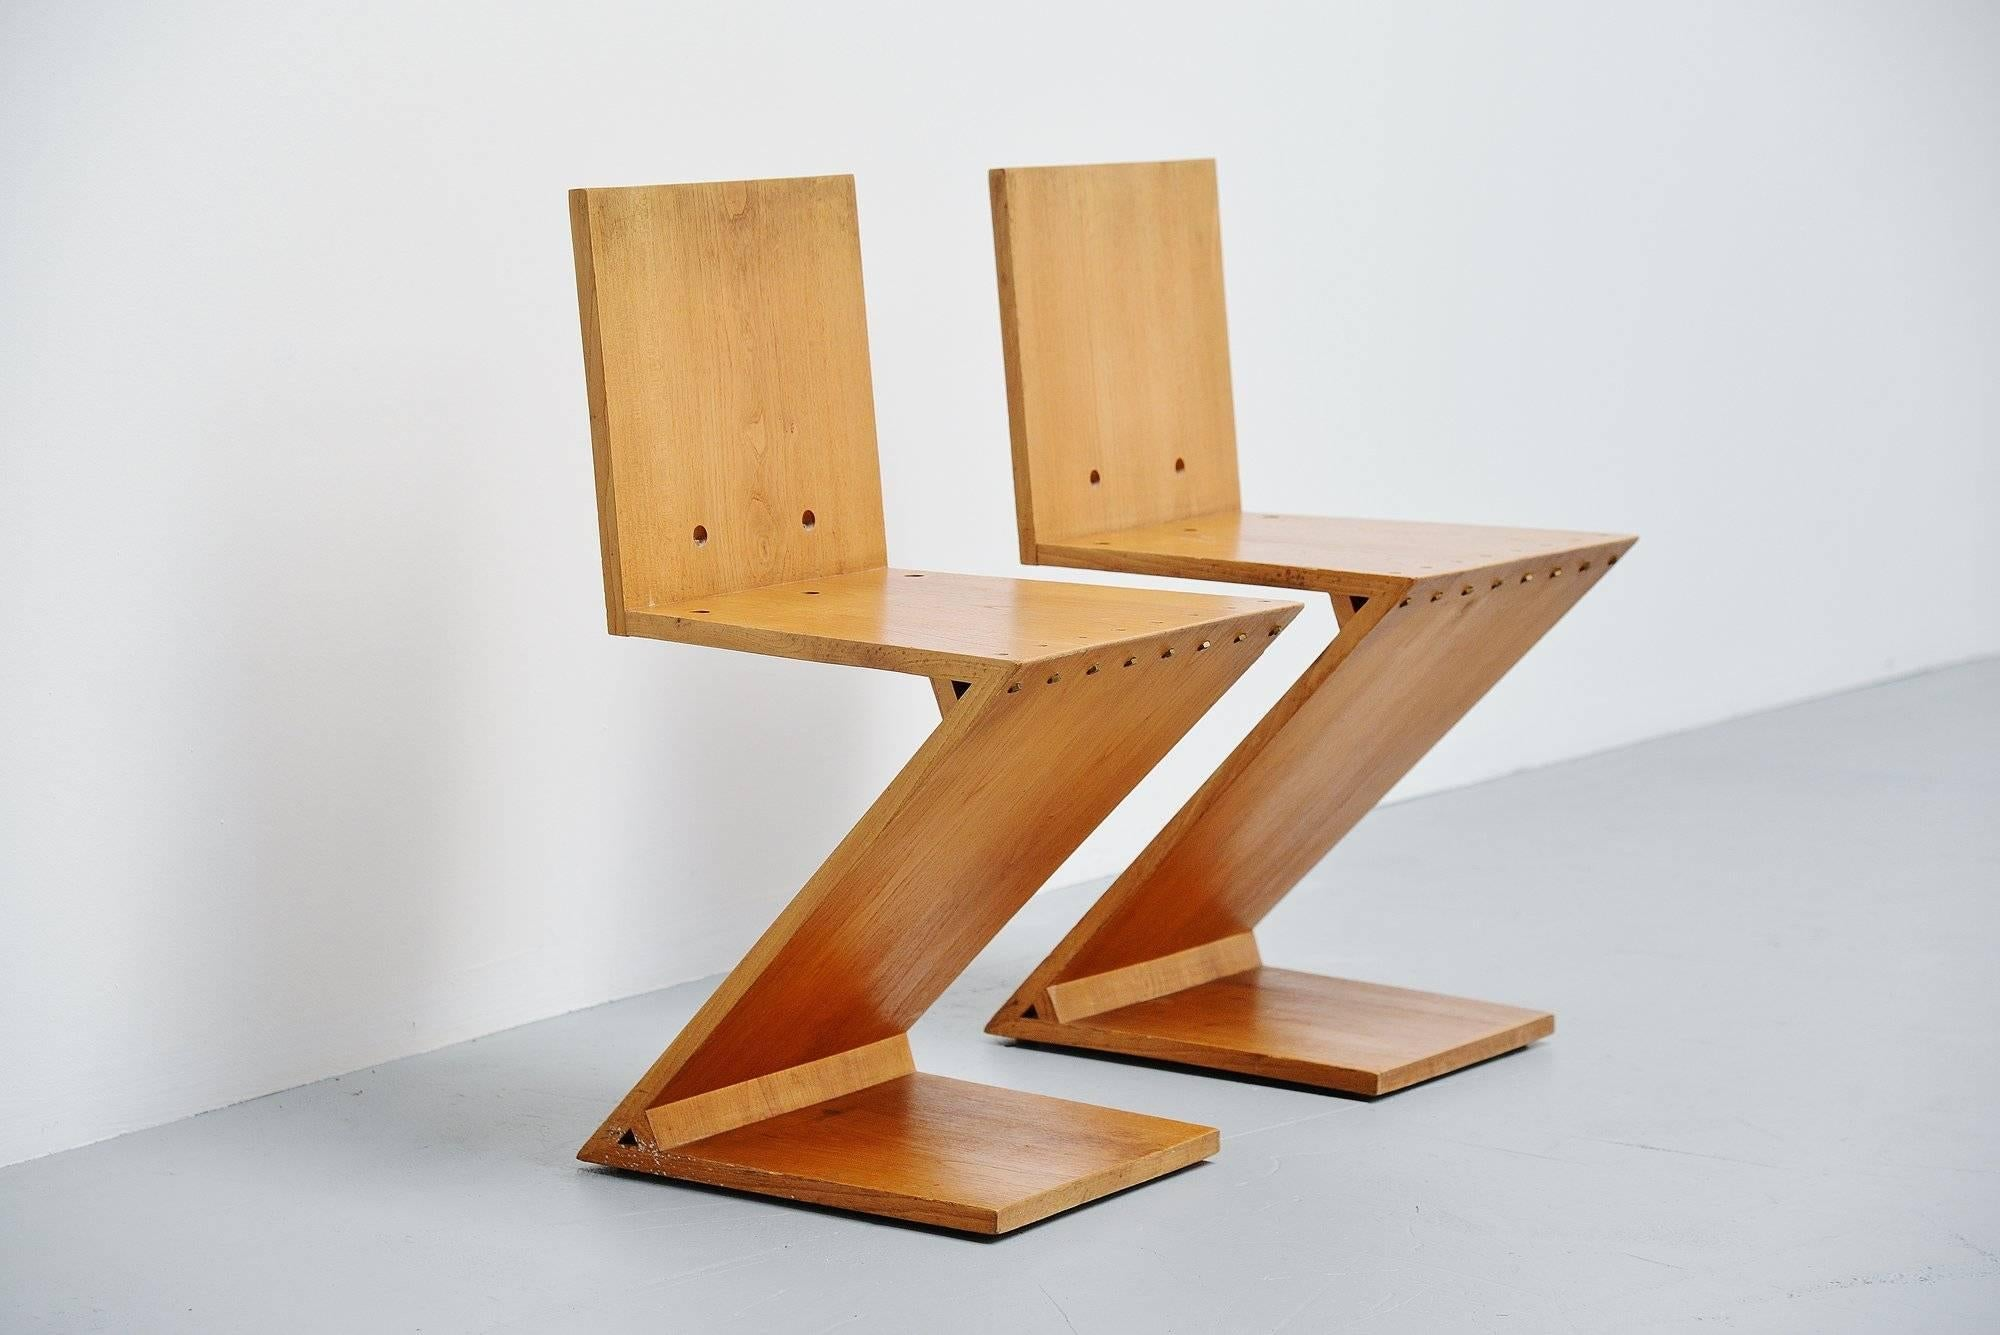 Gerrit Rietveld Zig Zag Chair Pair G.A.v.d. Groenekan, 1965 In Excellent  Condition For Sale In